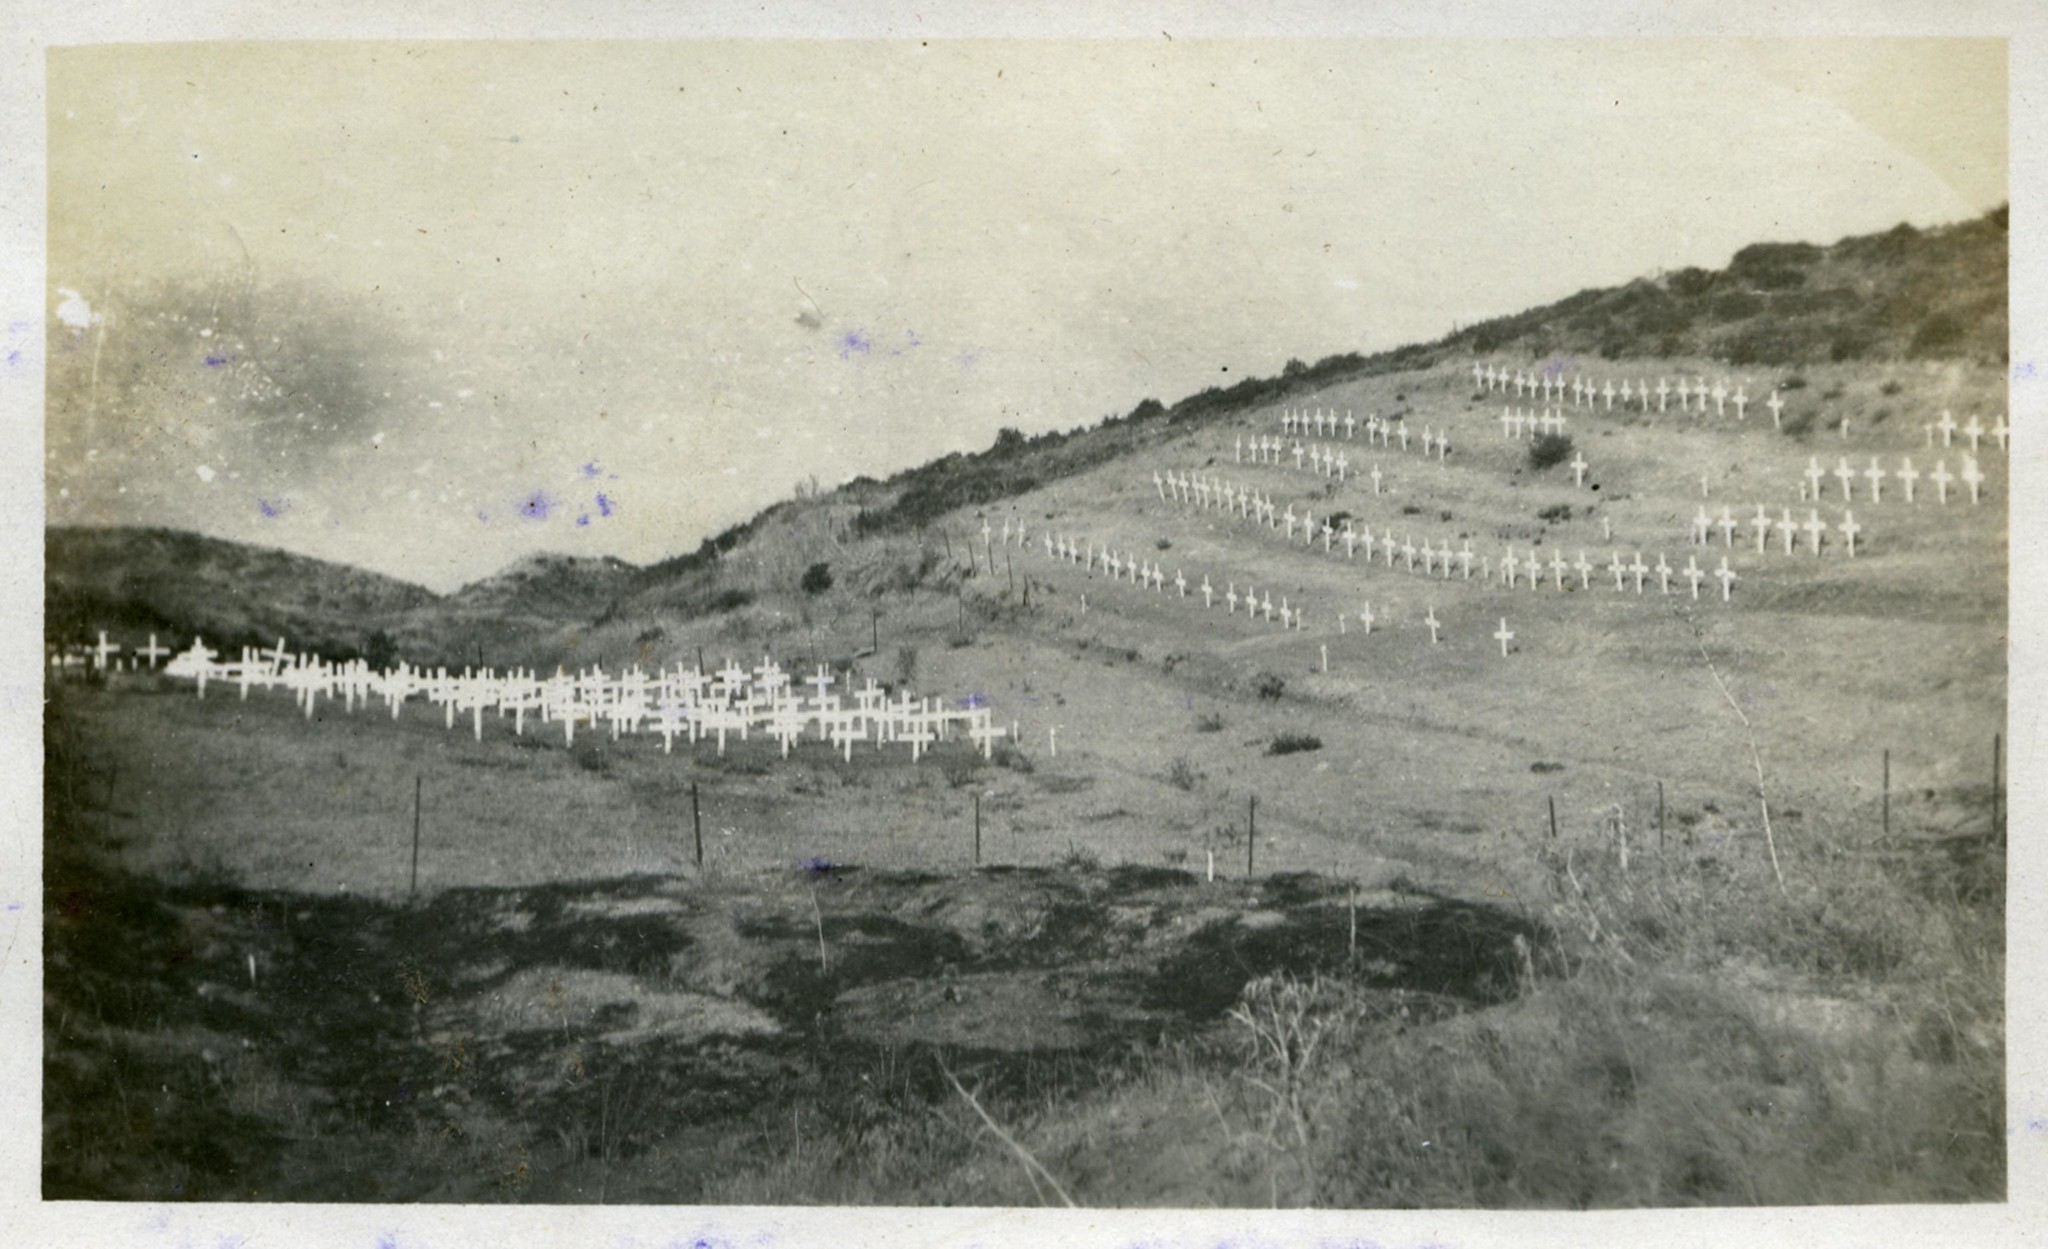 ANZAC graves at Browns Dip cemetery, Gallipoli Peninsula  Flickr - Phot...